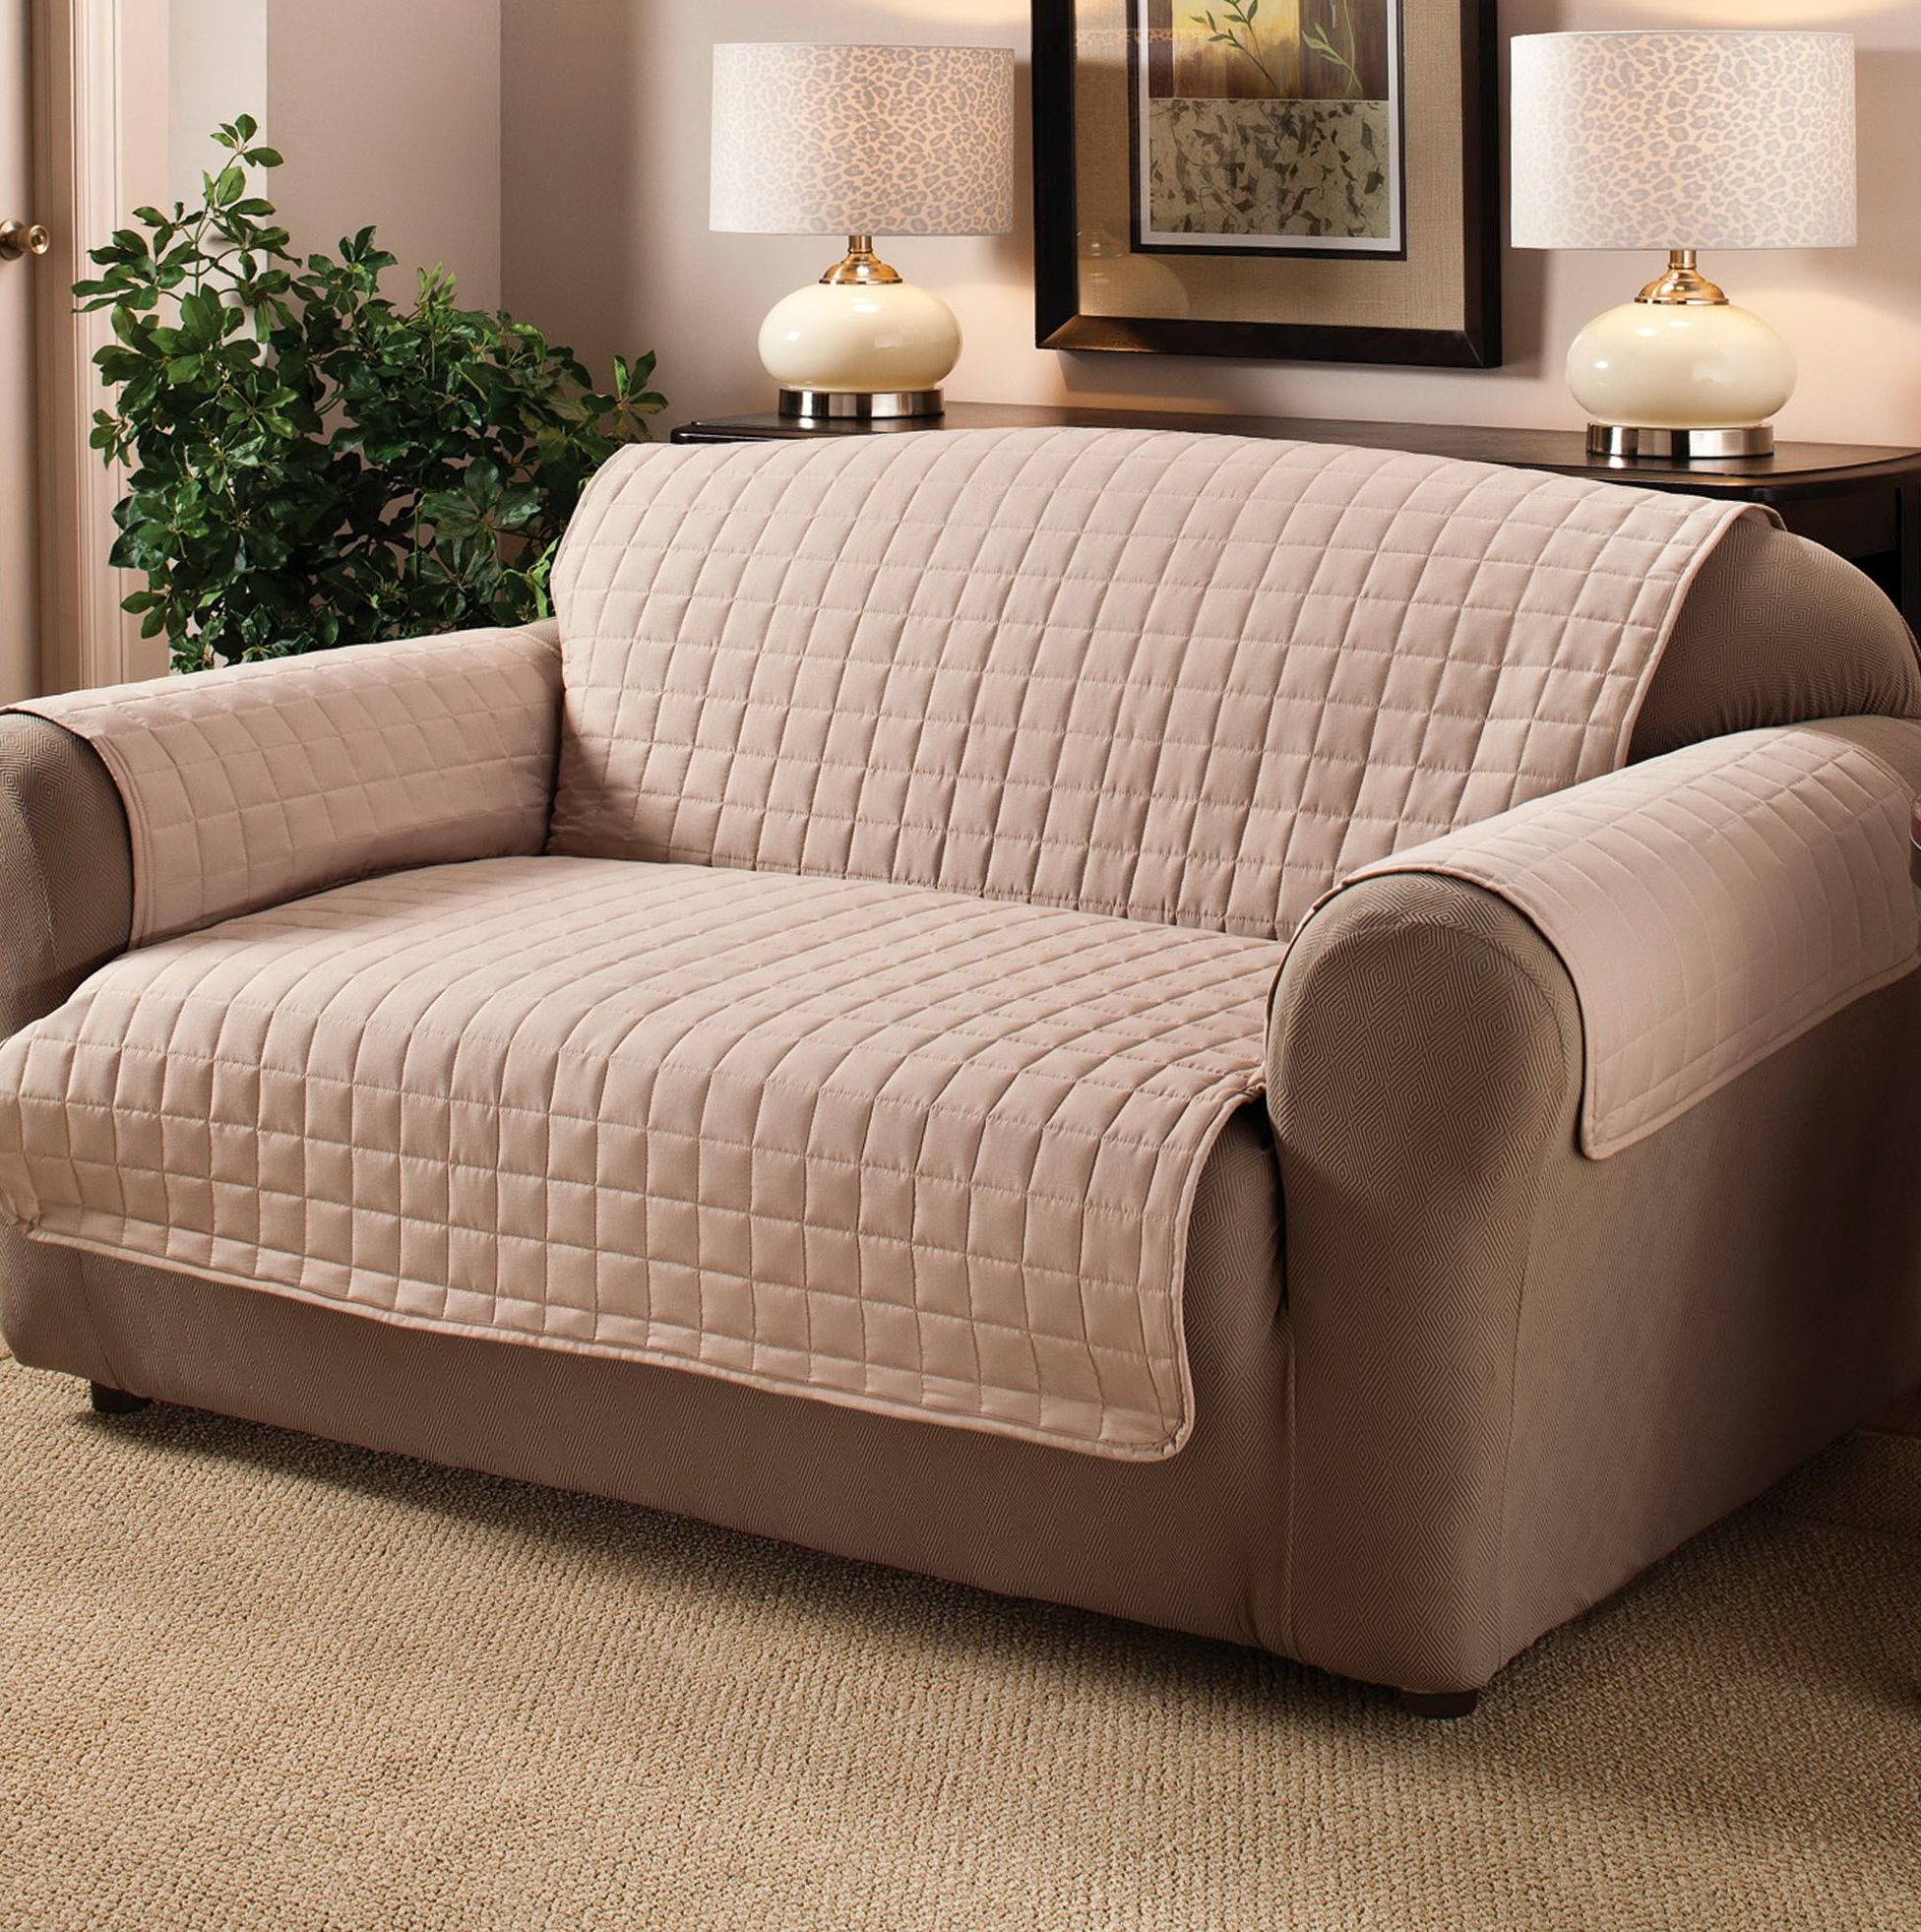 Furniture Perfect Living Room With Sofa Slipcovers Walmart For With Regard To Contemporary Sofa Slipcovers (Image 7 of 15)